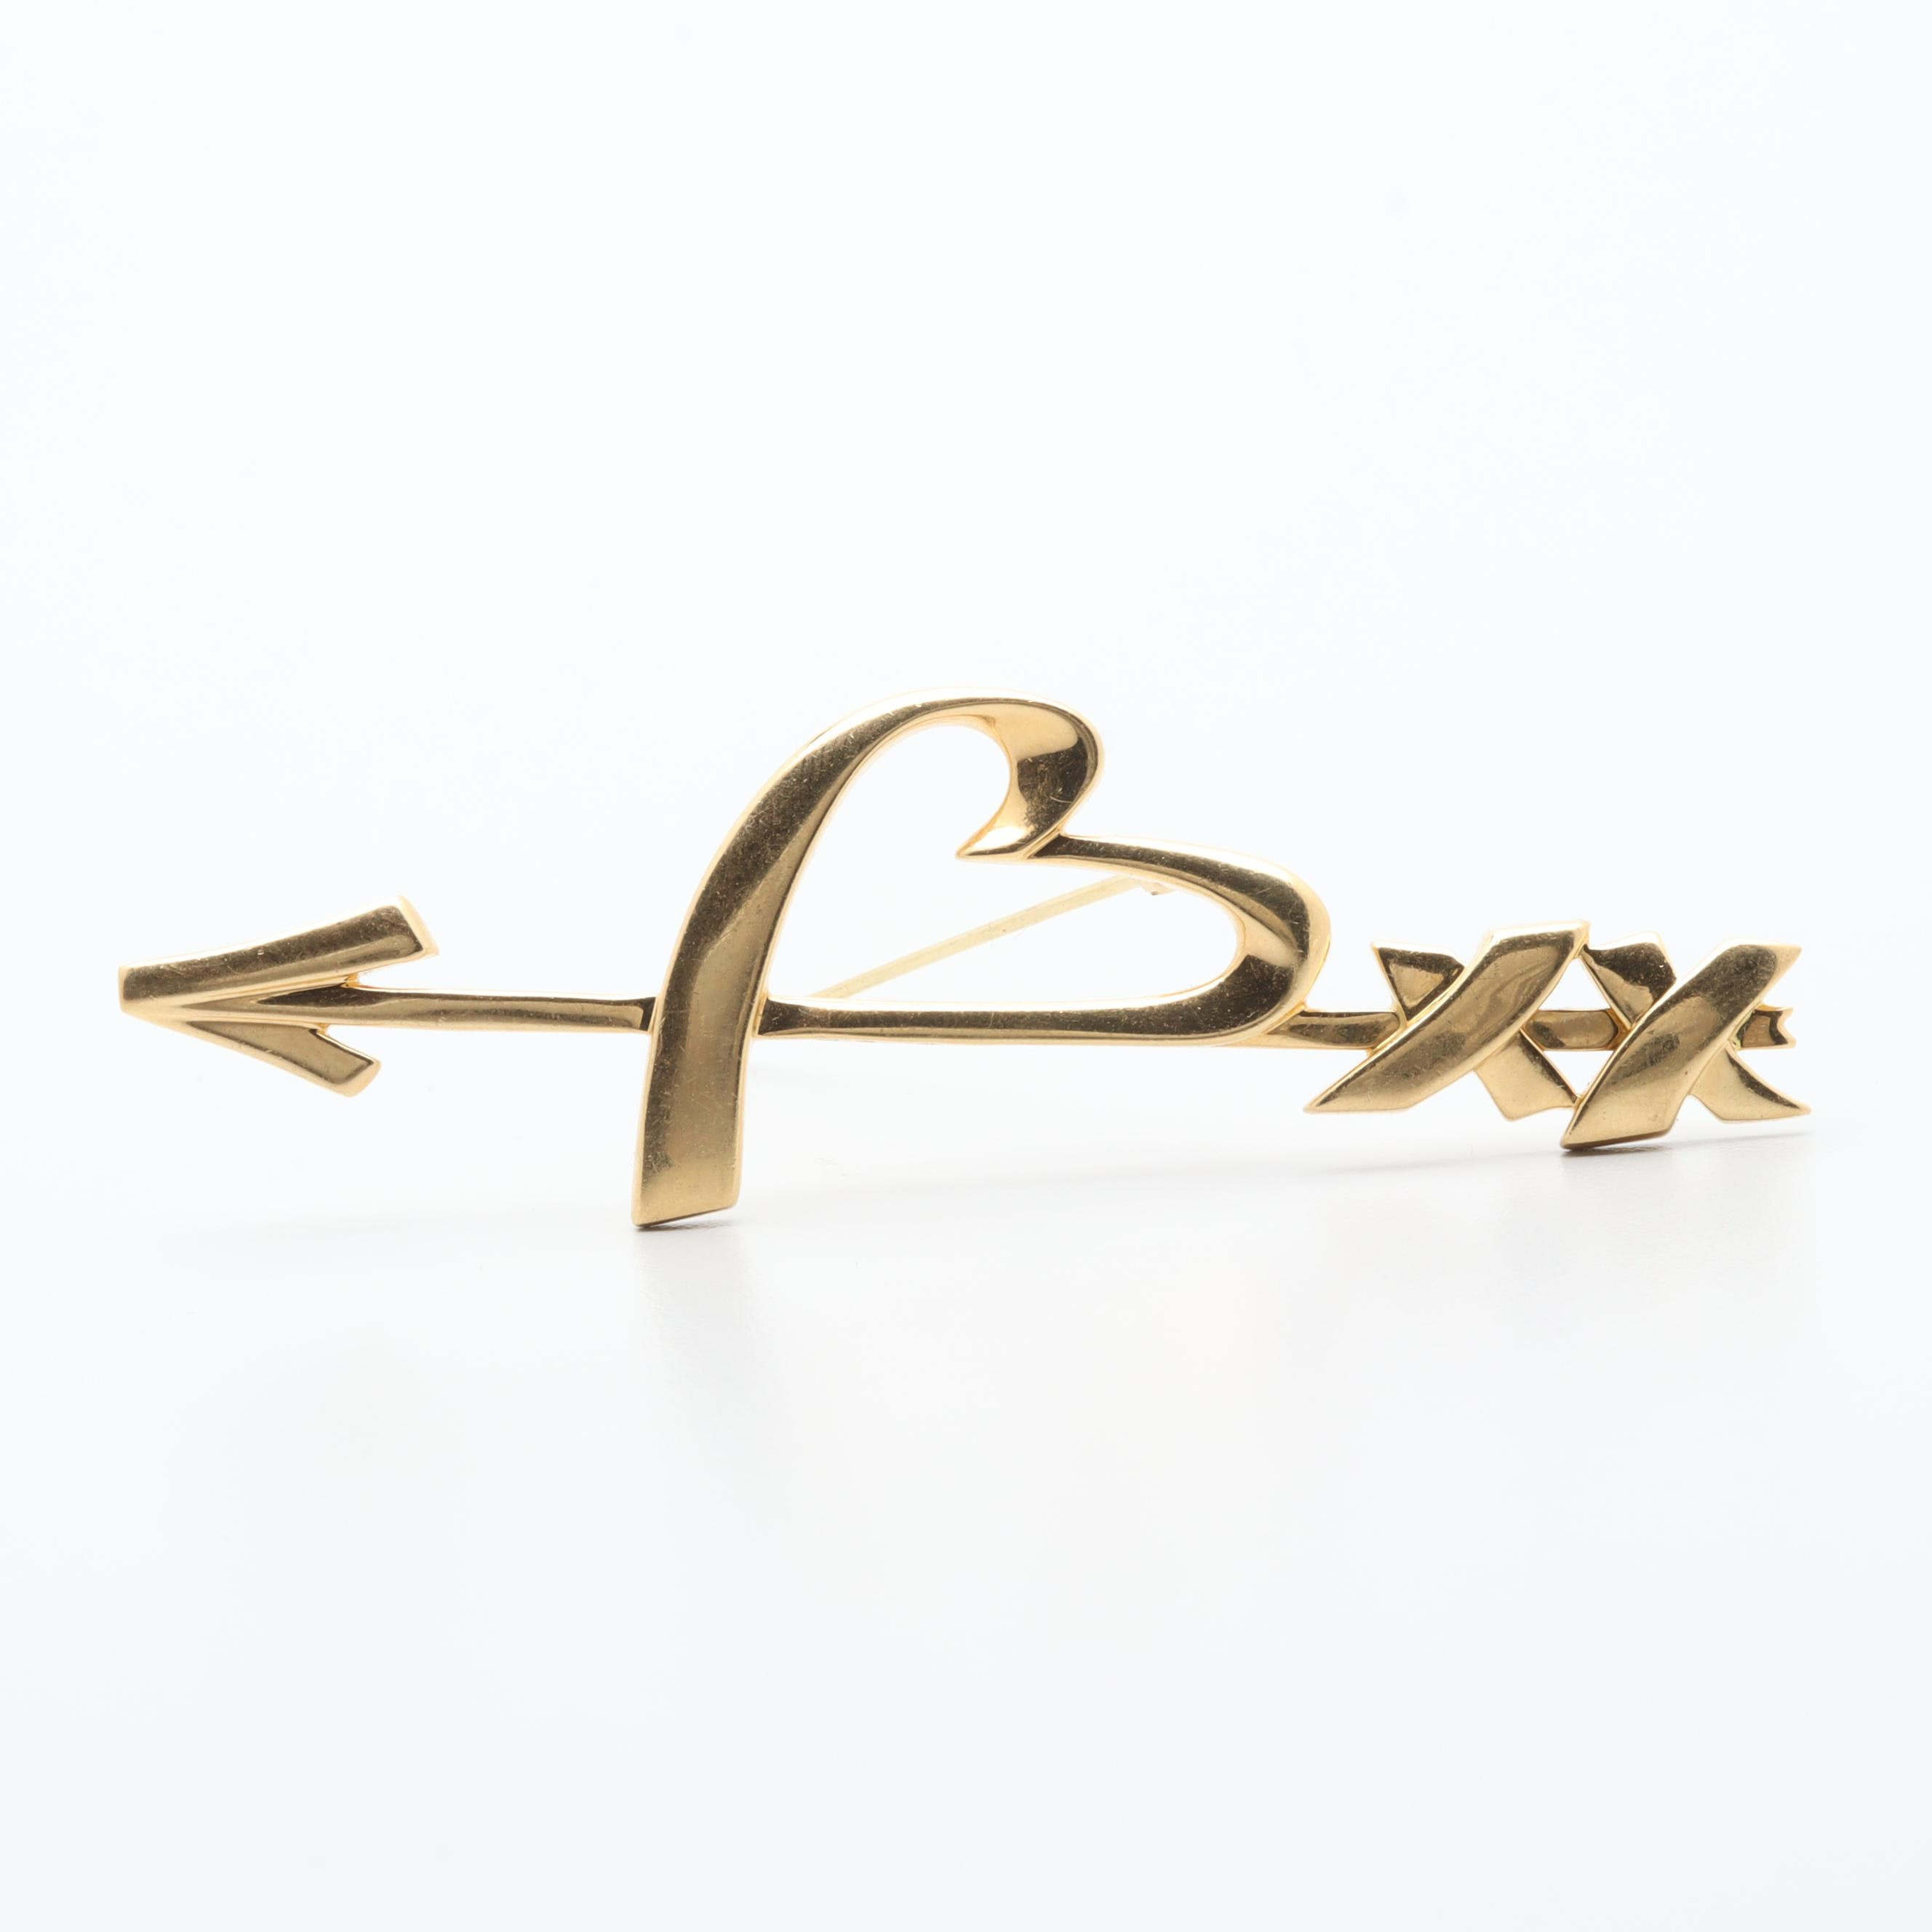 Paloma Picasso for Tiffany & Co. 18K Yellow Gold Heart and Arrow Brooch